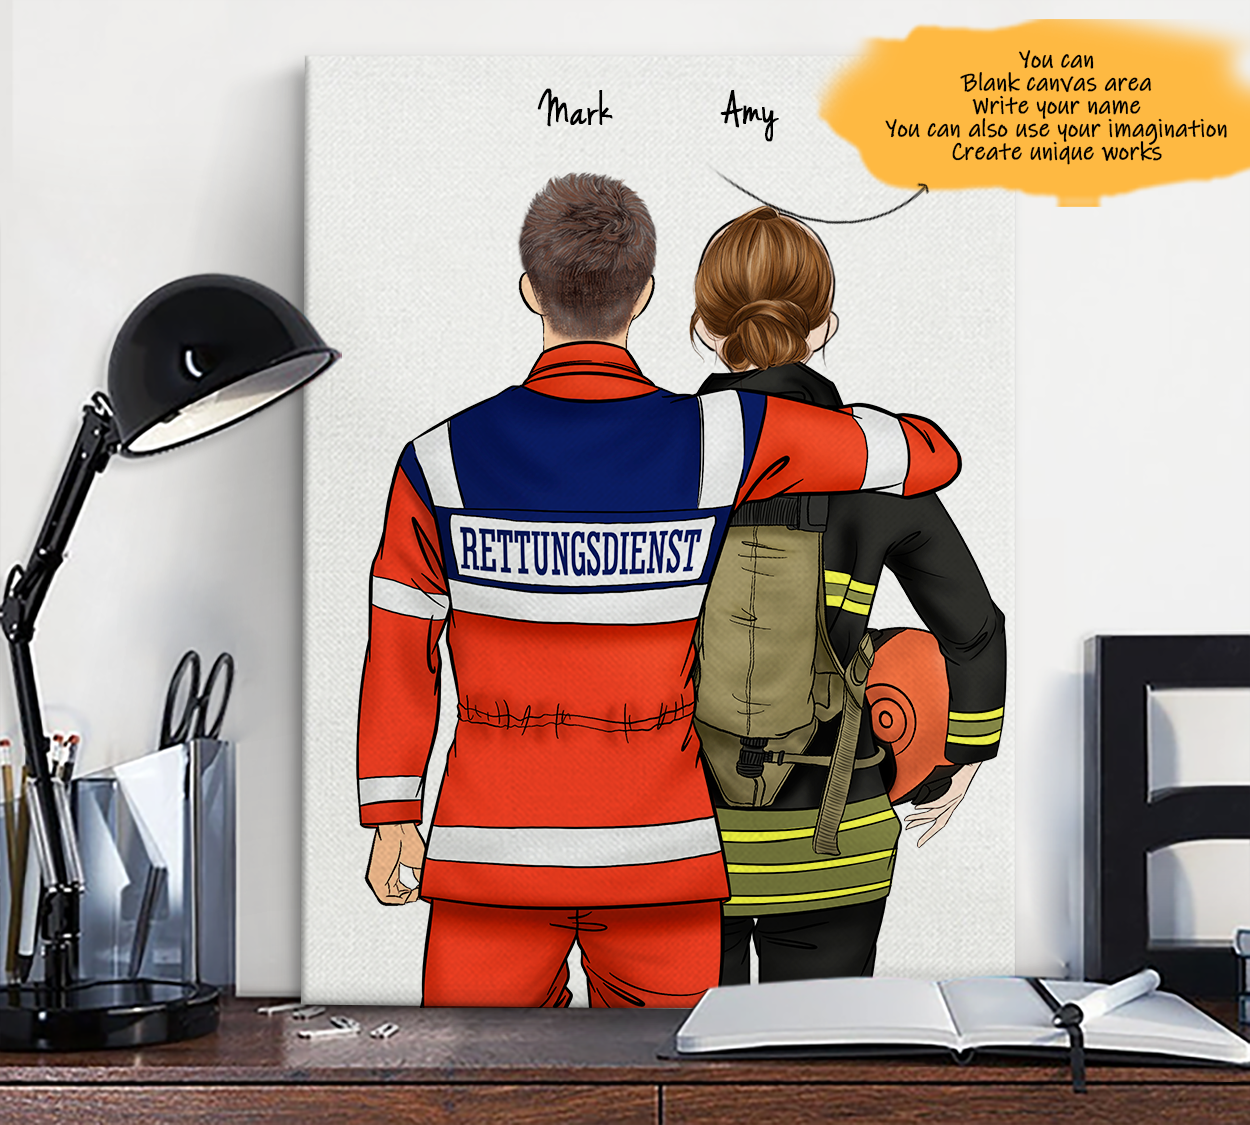 He is My Friend! Hand Draw Custom Canvas-Print Gift AmbulanceDriverGermany-Light&Firefighter